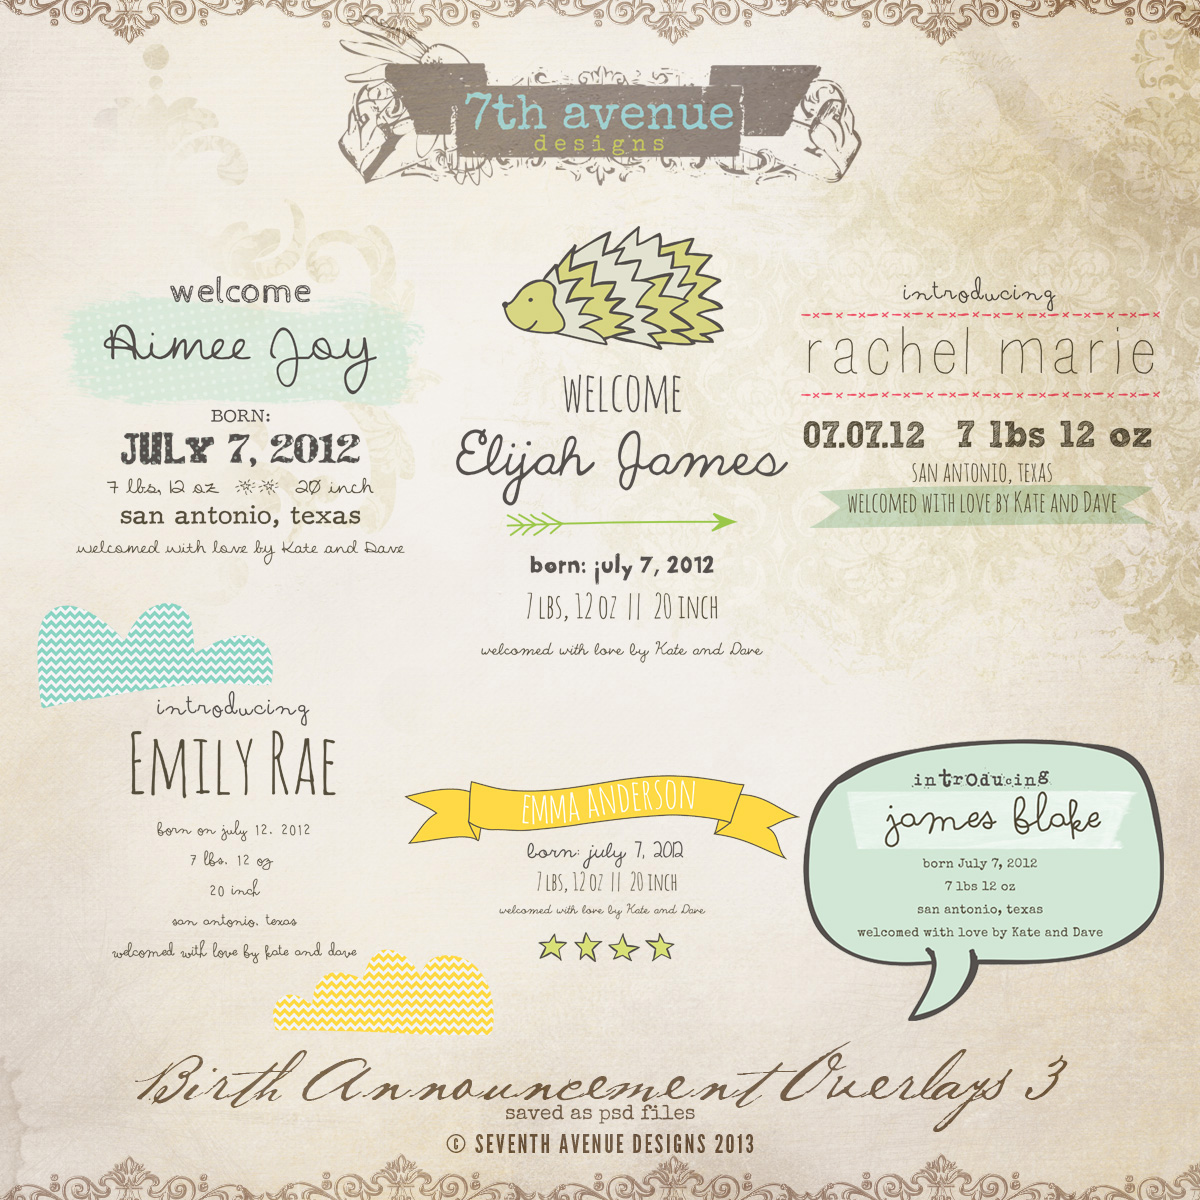 Birth Announcement Overlays vol.3